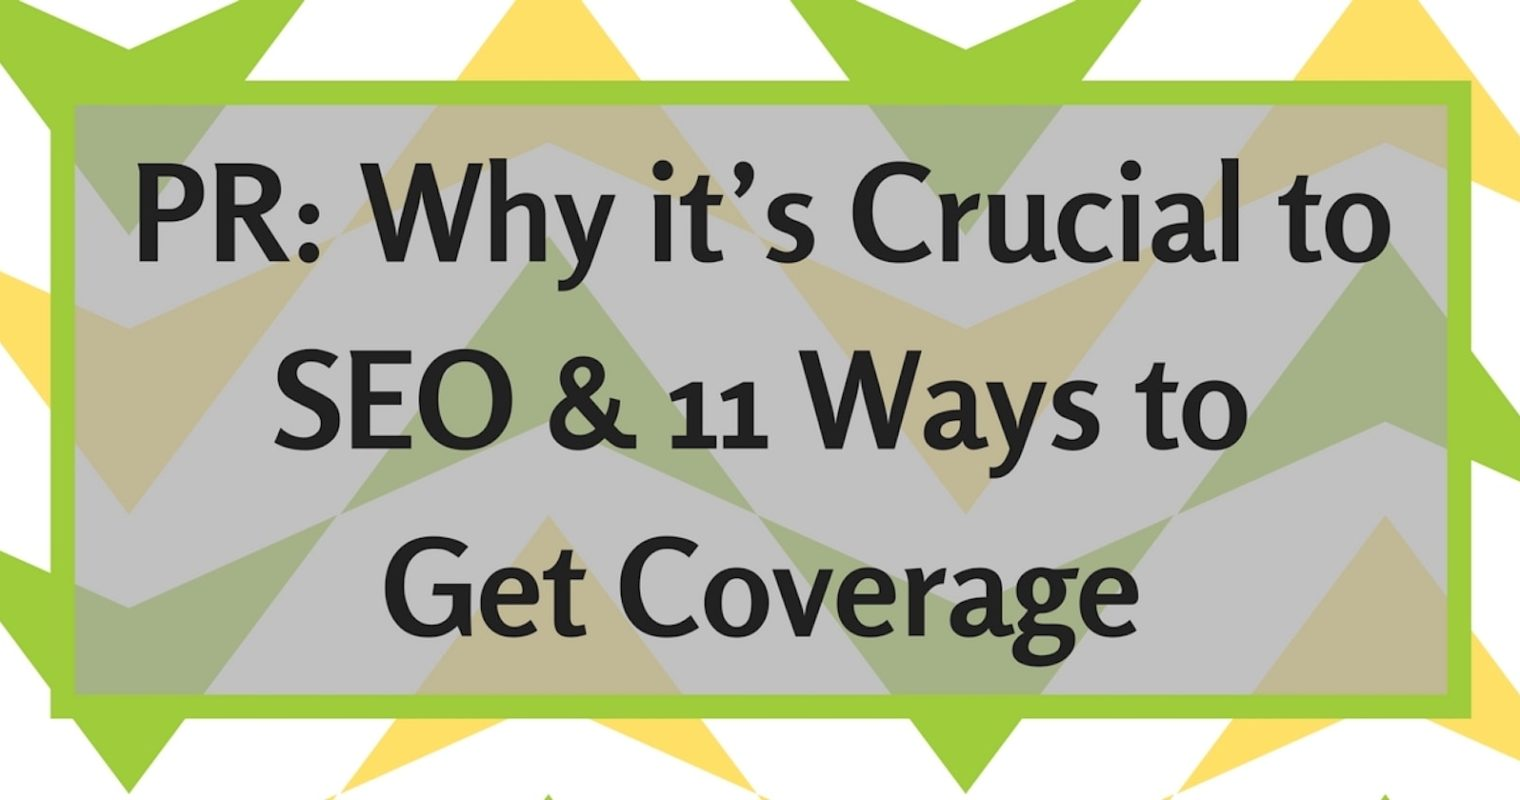 Why PR Is Crucial to SEO & 11 Ways to Get Coverage